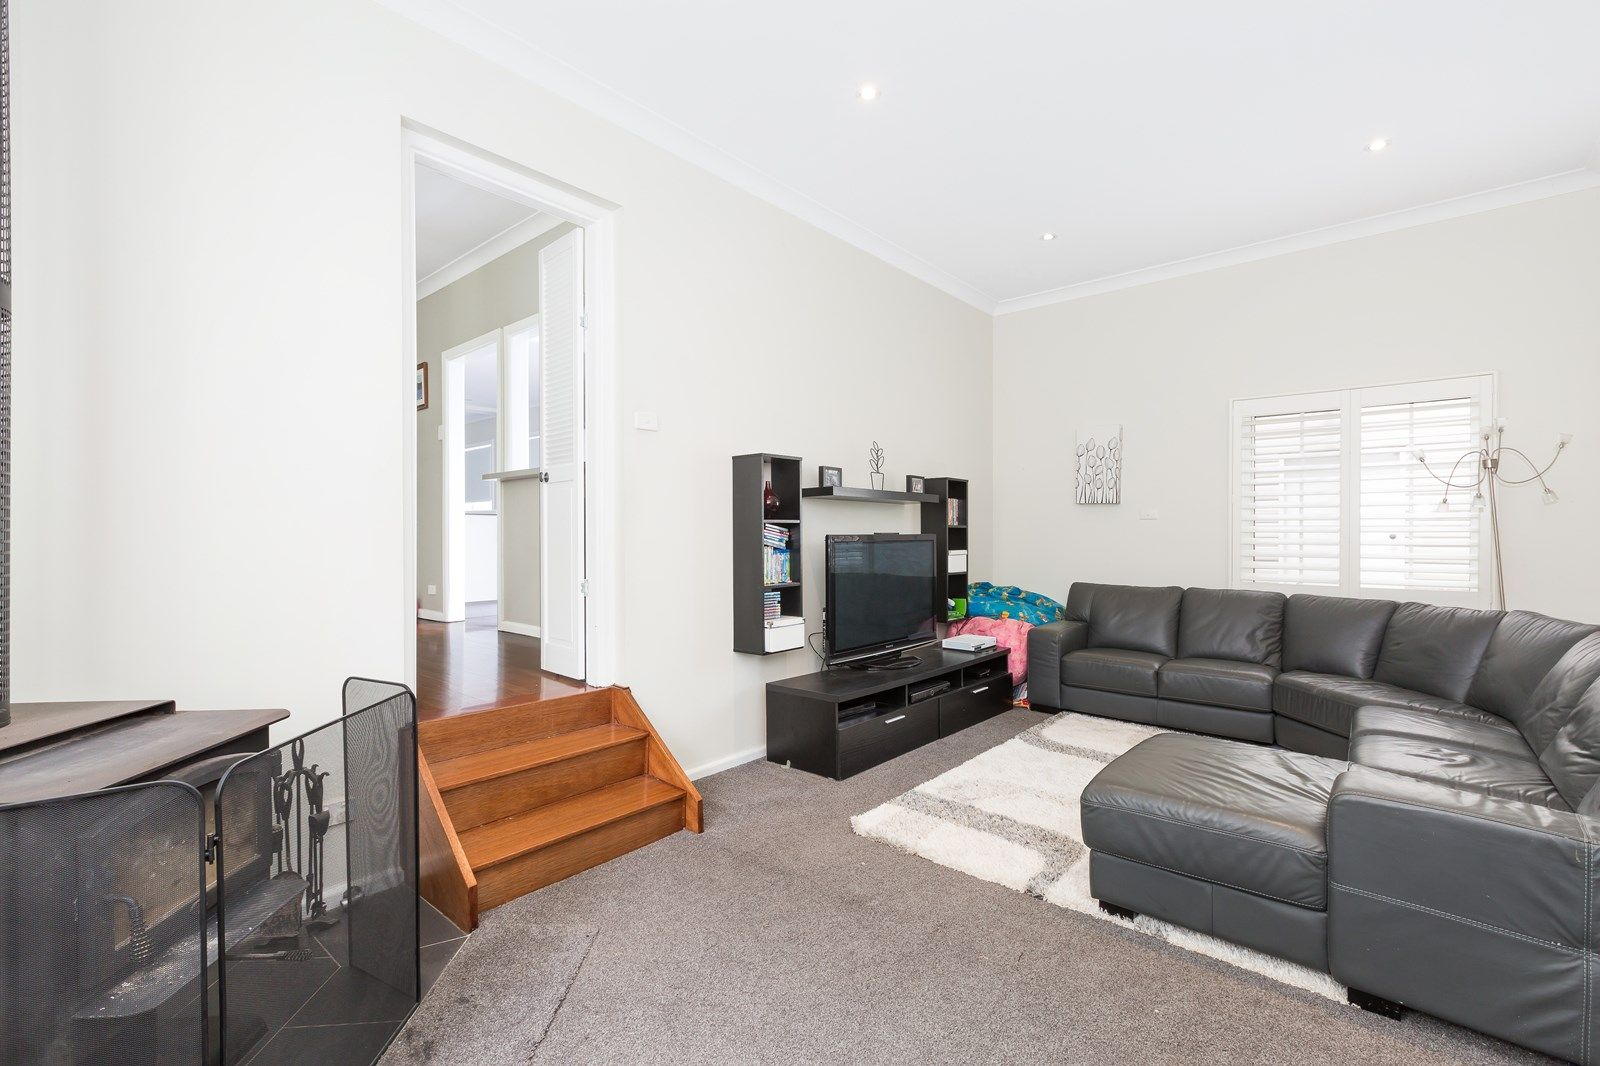 30 Short  Street, Oyster Bay NSW 2225, Image 1